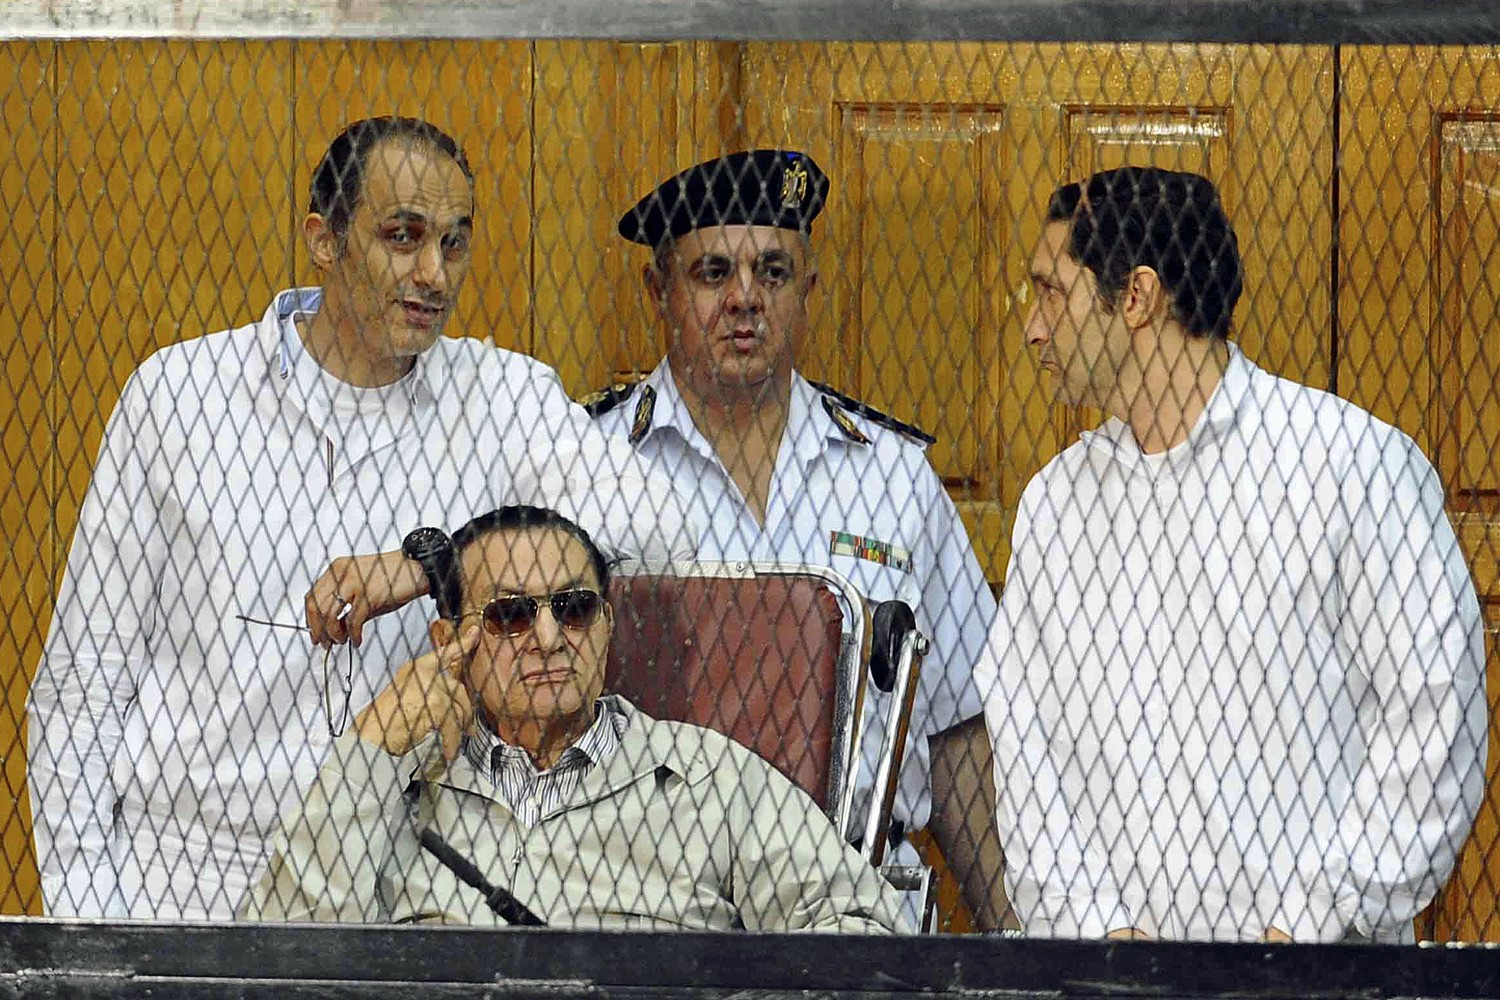 Egyptian court orders arrest of Mubarak's sons over stock market manipulation